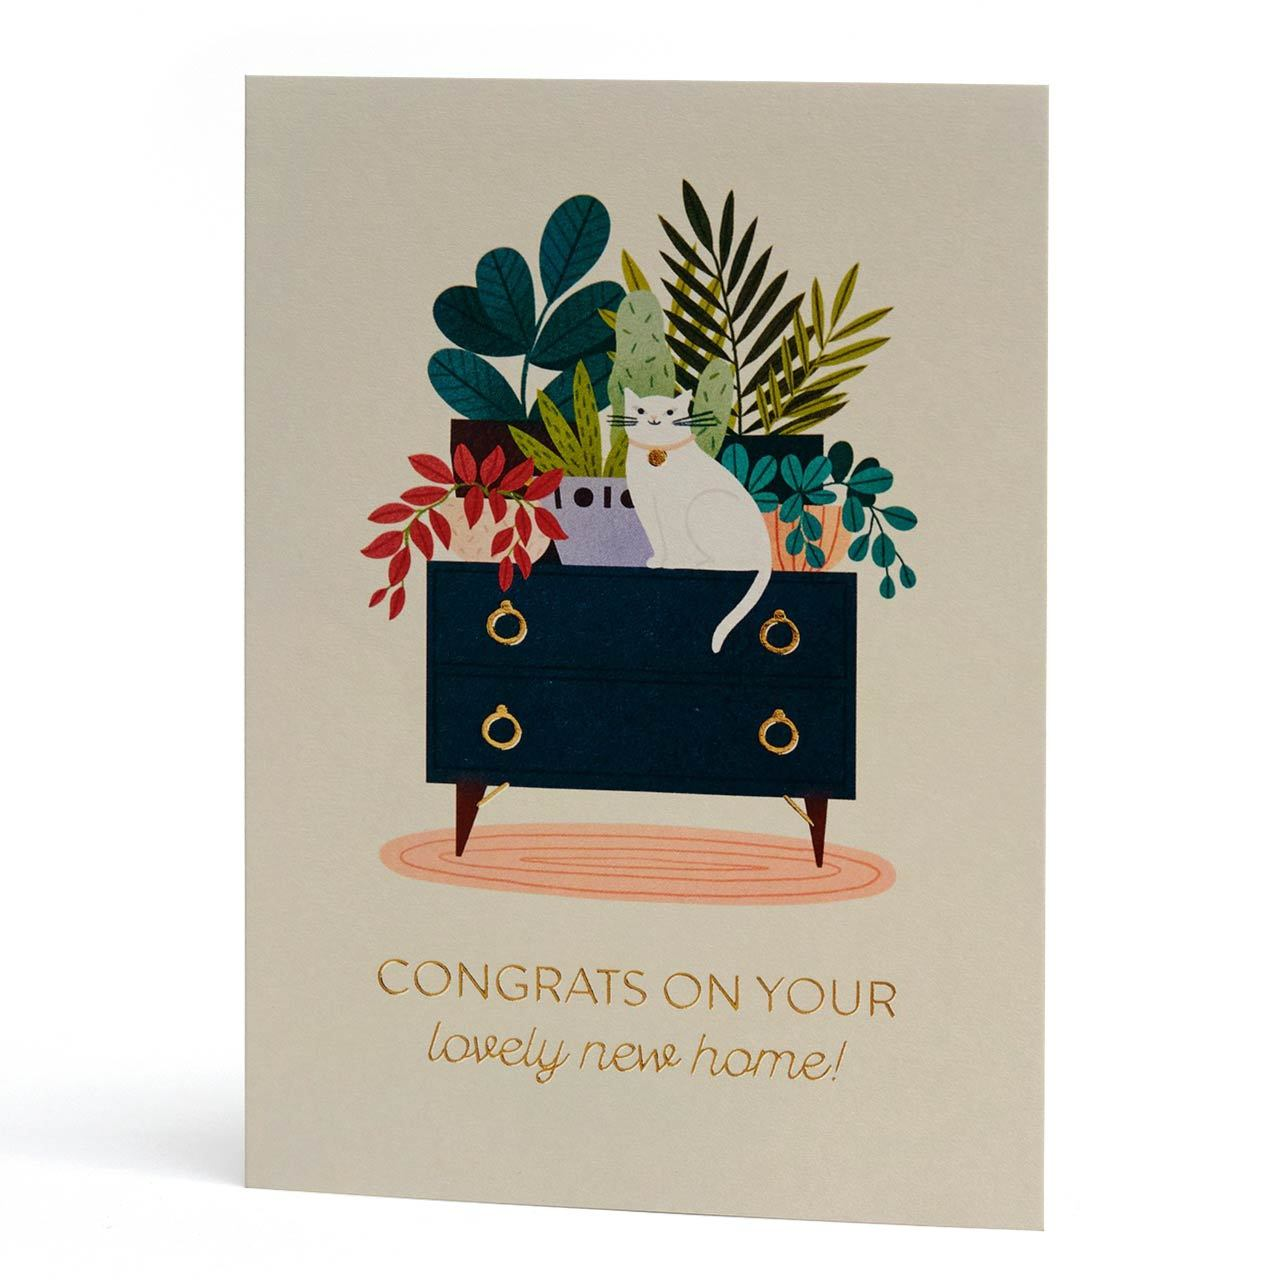 Lovely New Home Gold Foil Greeting Card